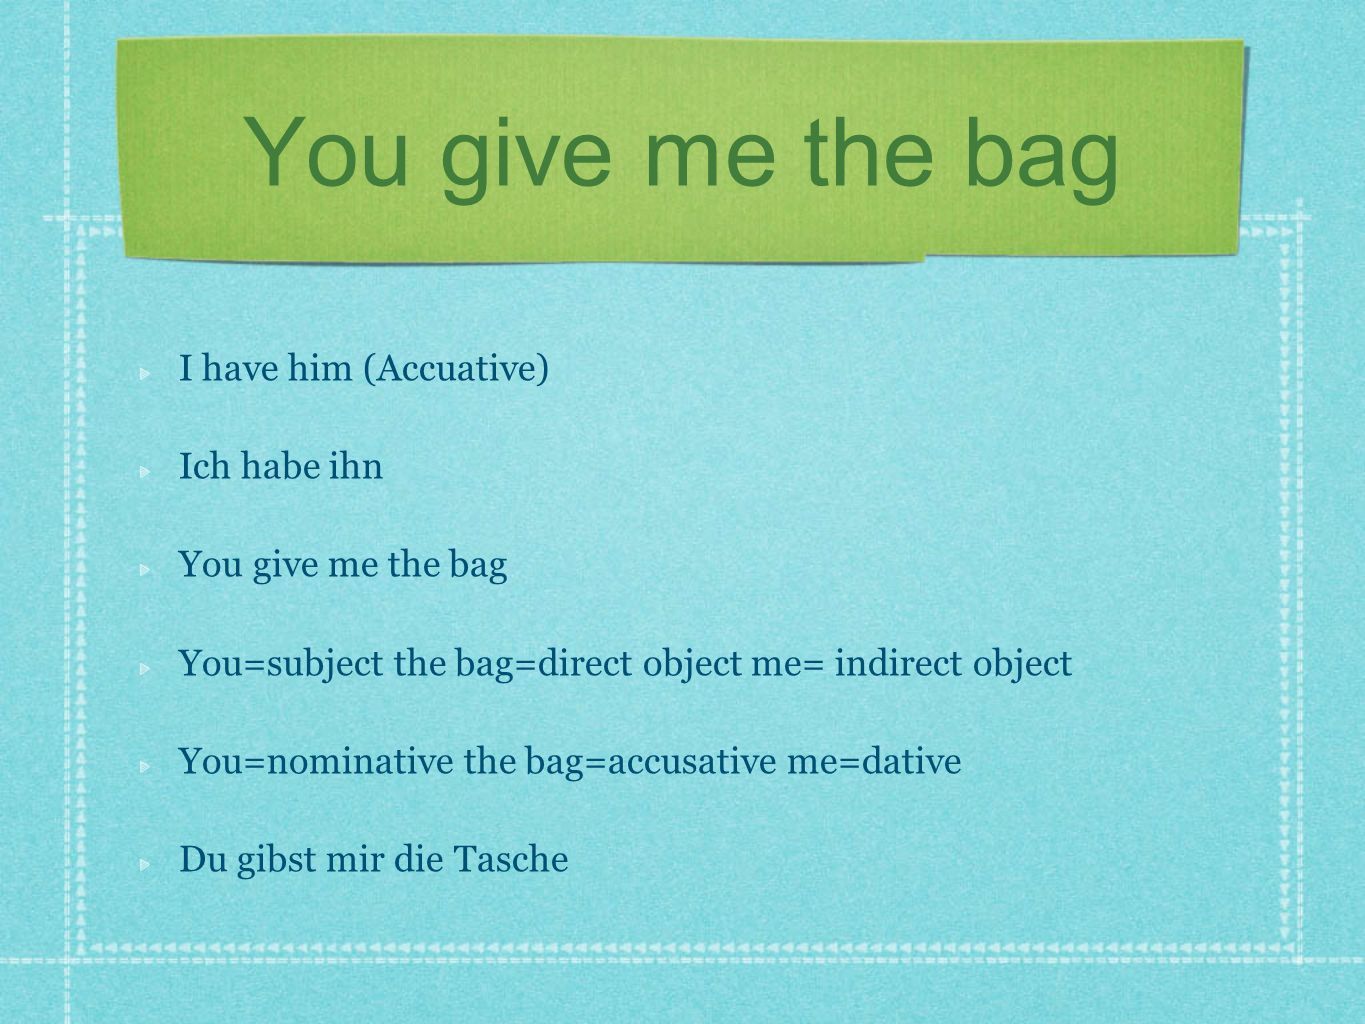 You give me the bag I have him (Accuative) Ich habe ihn You give me the bag You=subject the bag=direct object me= indirect object You=nominative the b